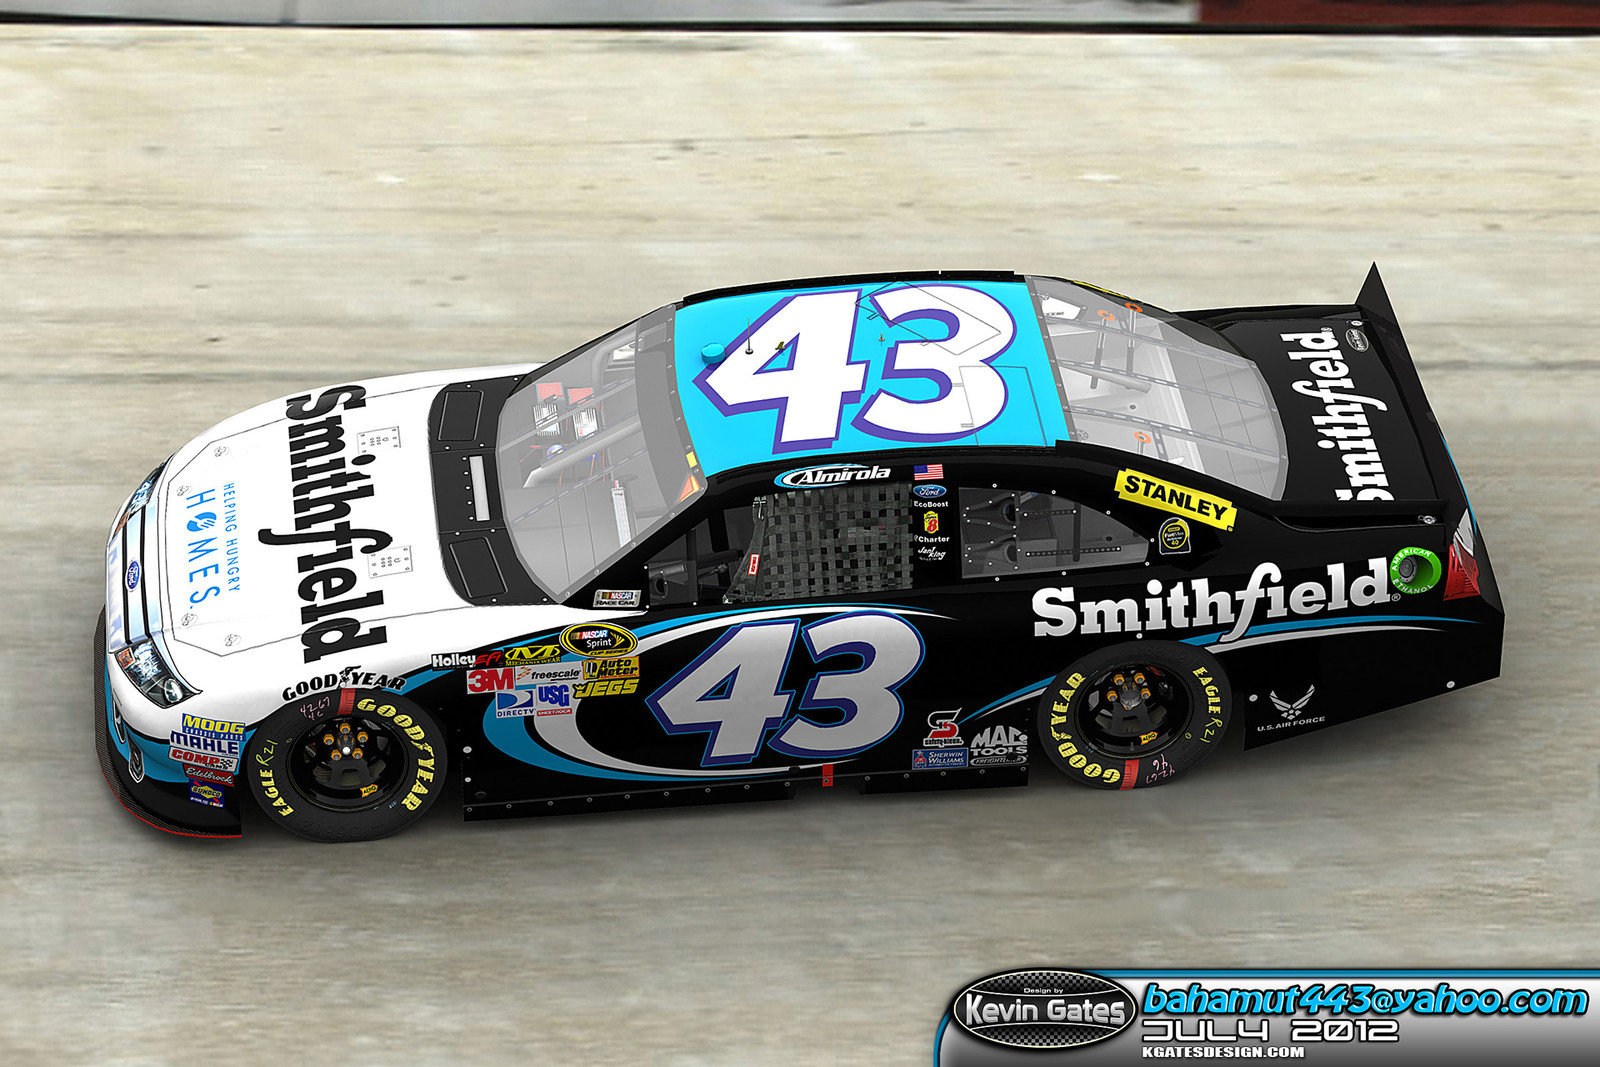 Autodesk 3DS Max render provided to Smithfield Foods depicting the proposed #43 Smithfield paint scheme on track